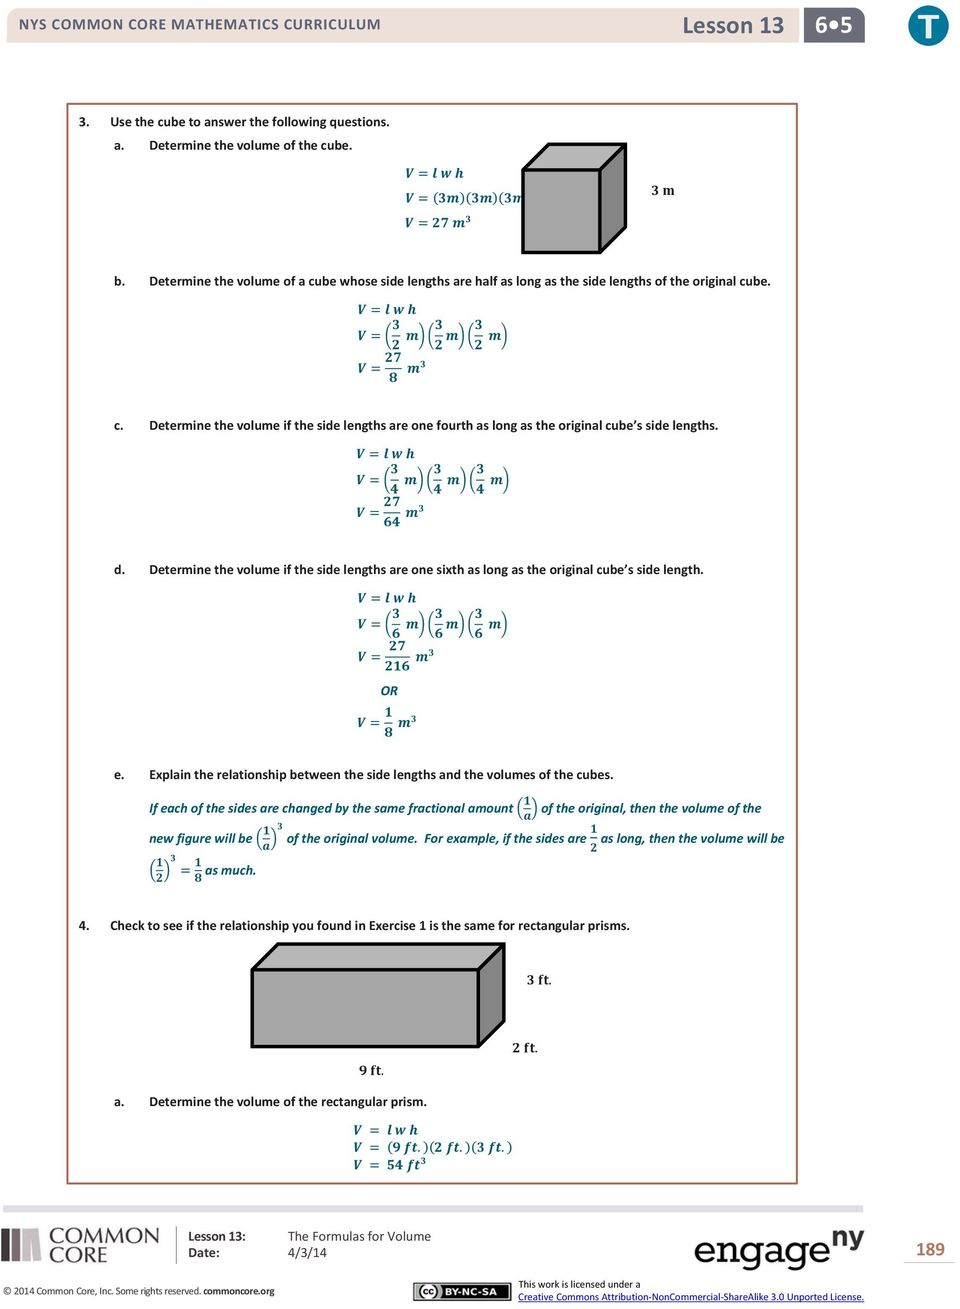 Determine the volume if the side lengths are one sixth as long as the original cube s side length. e. Explain the relationship between the side lengths and the volumes of the cubes.